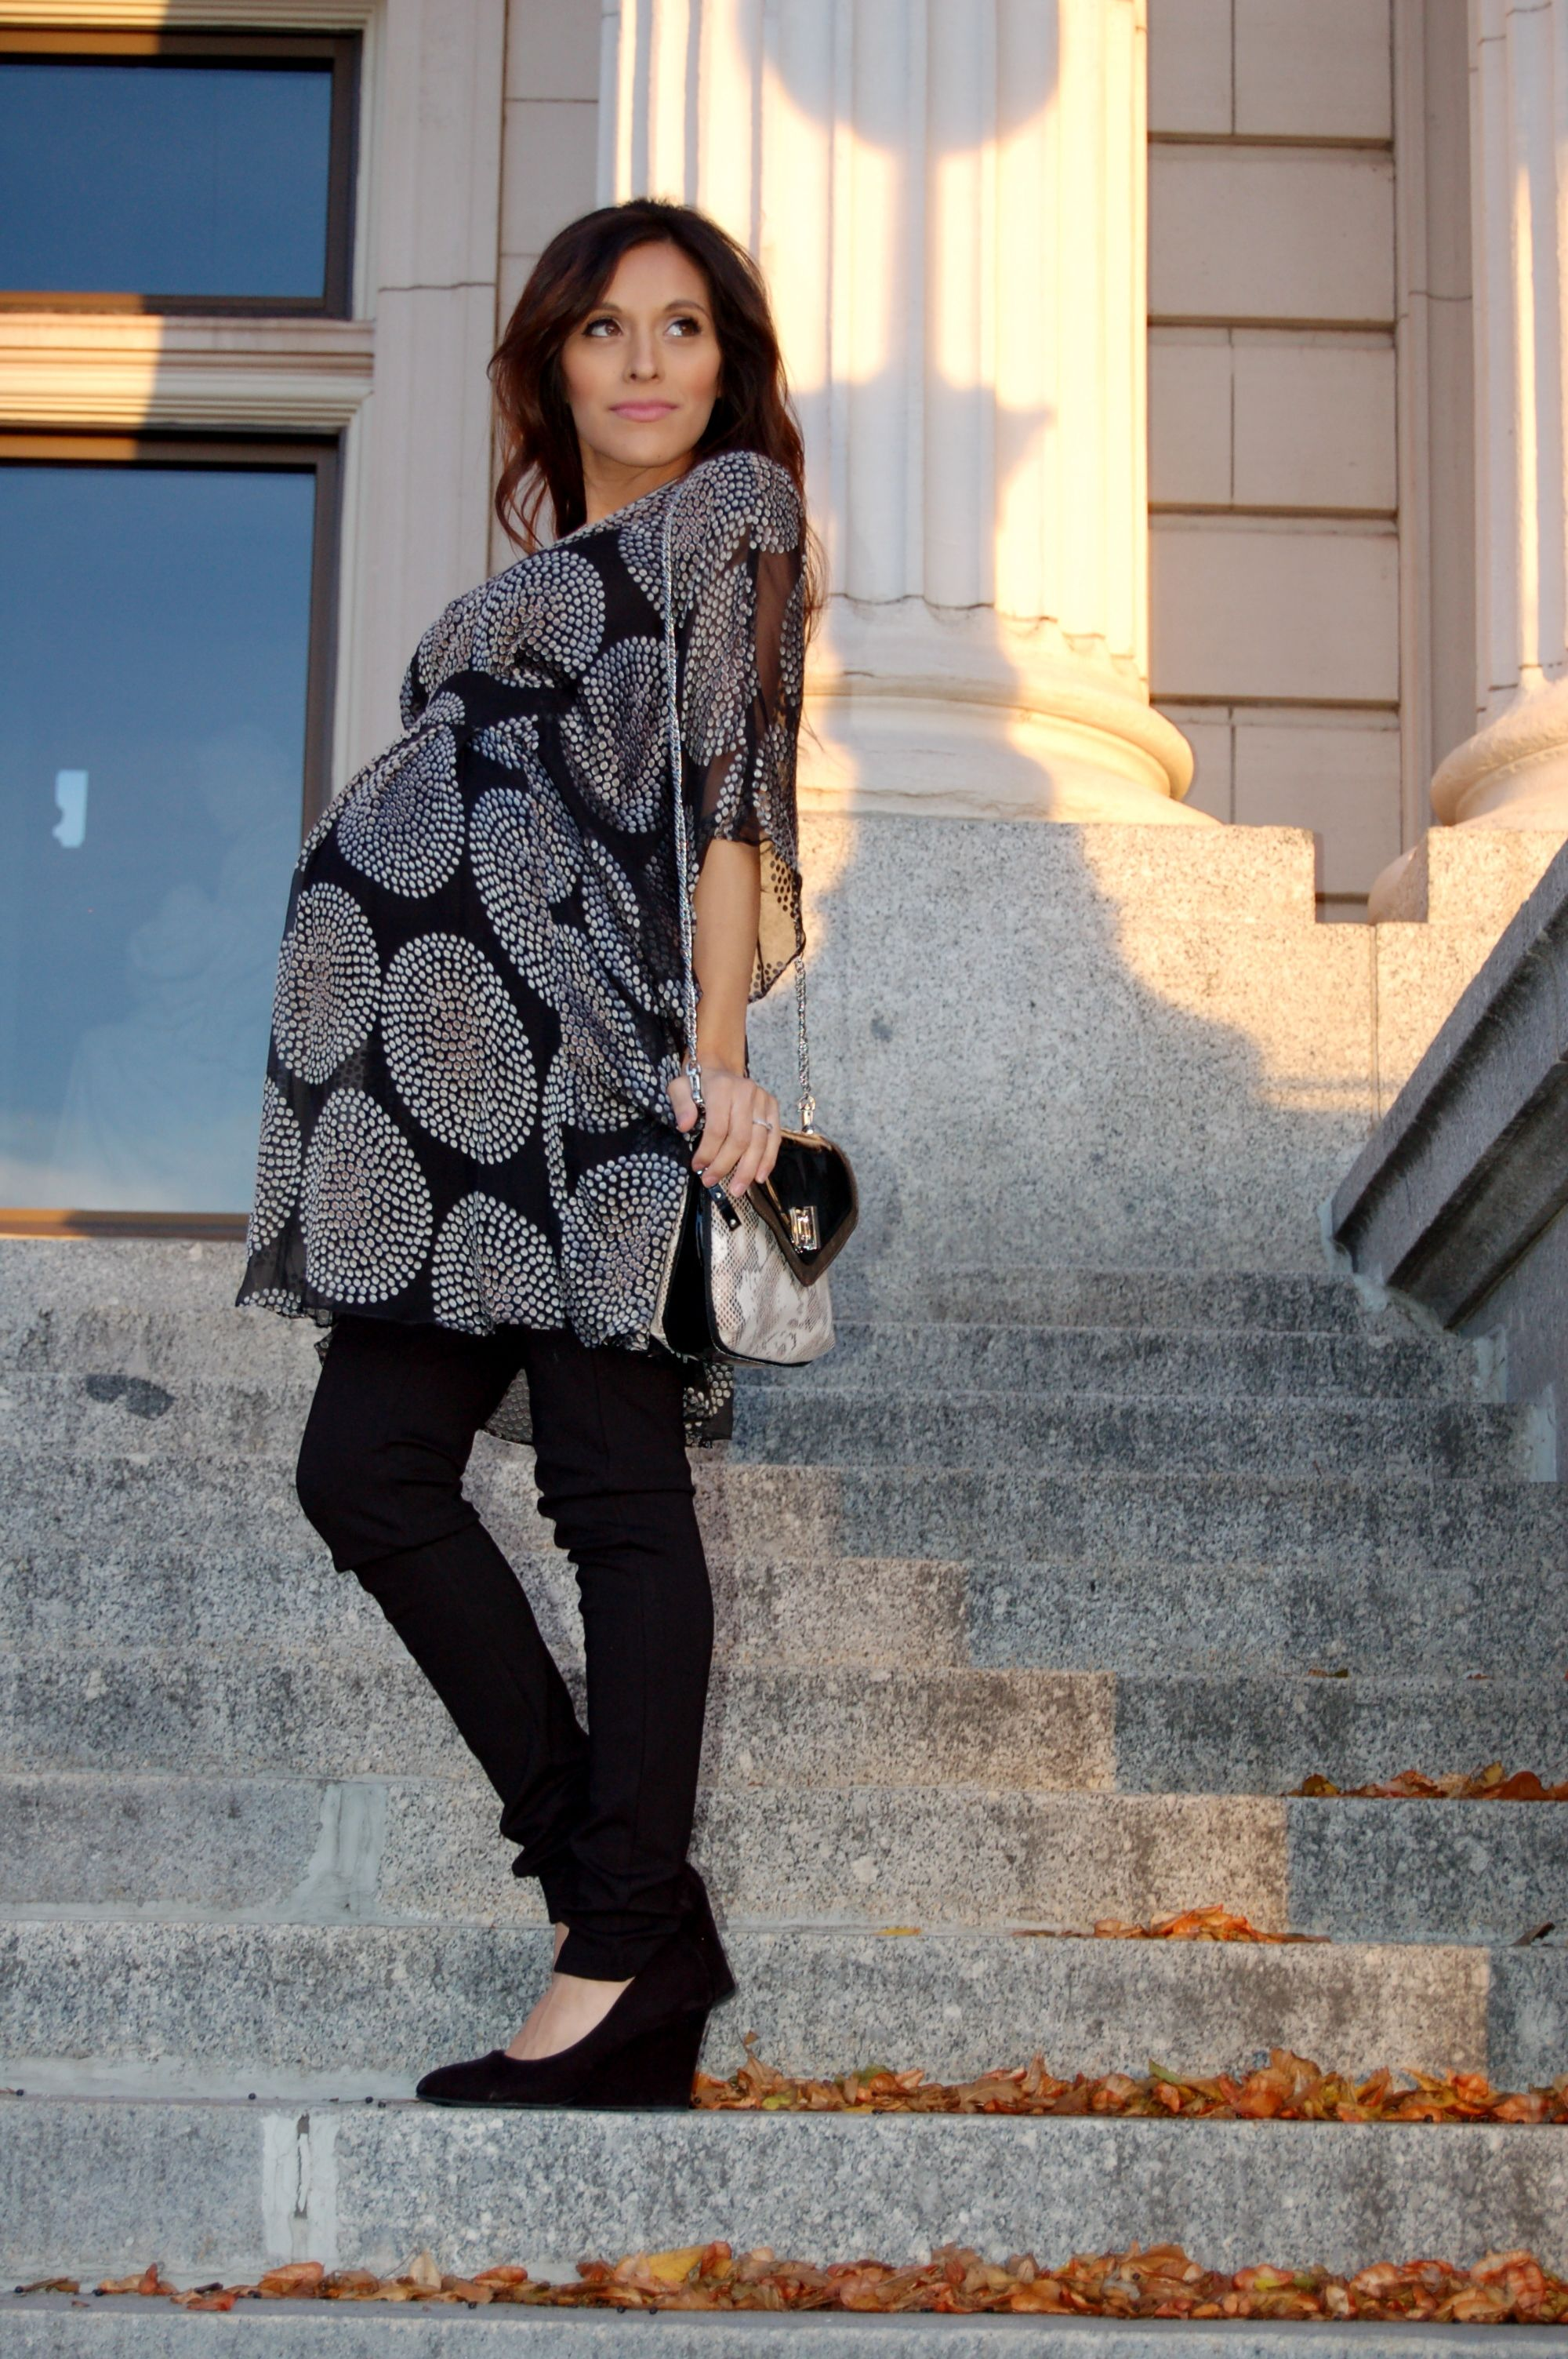 Maternity style: A touch of Luxe by Seraphine Maternity. (Gold and black silk tunic)